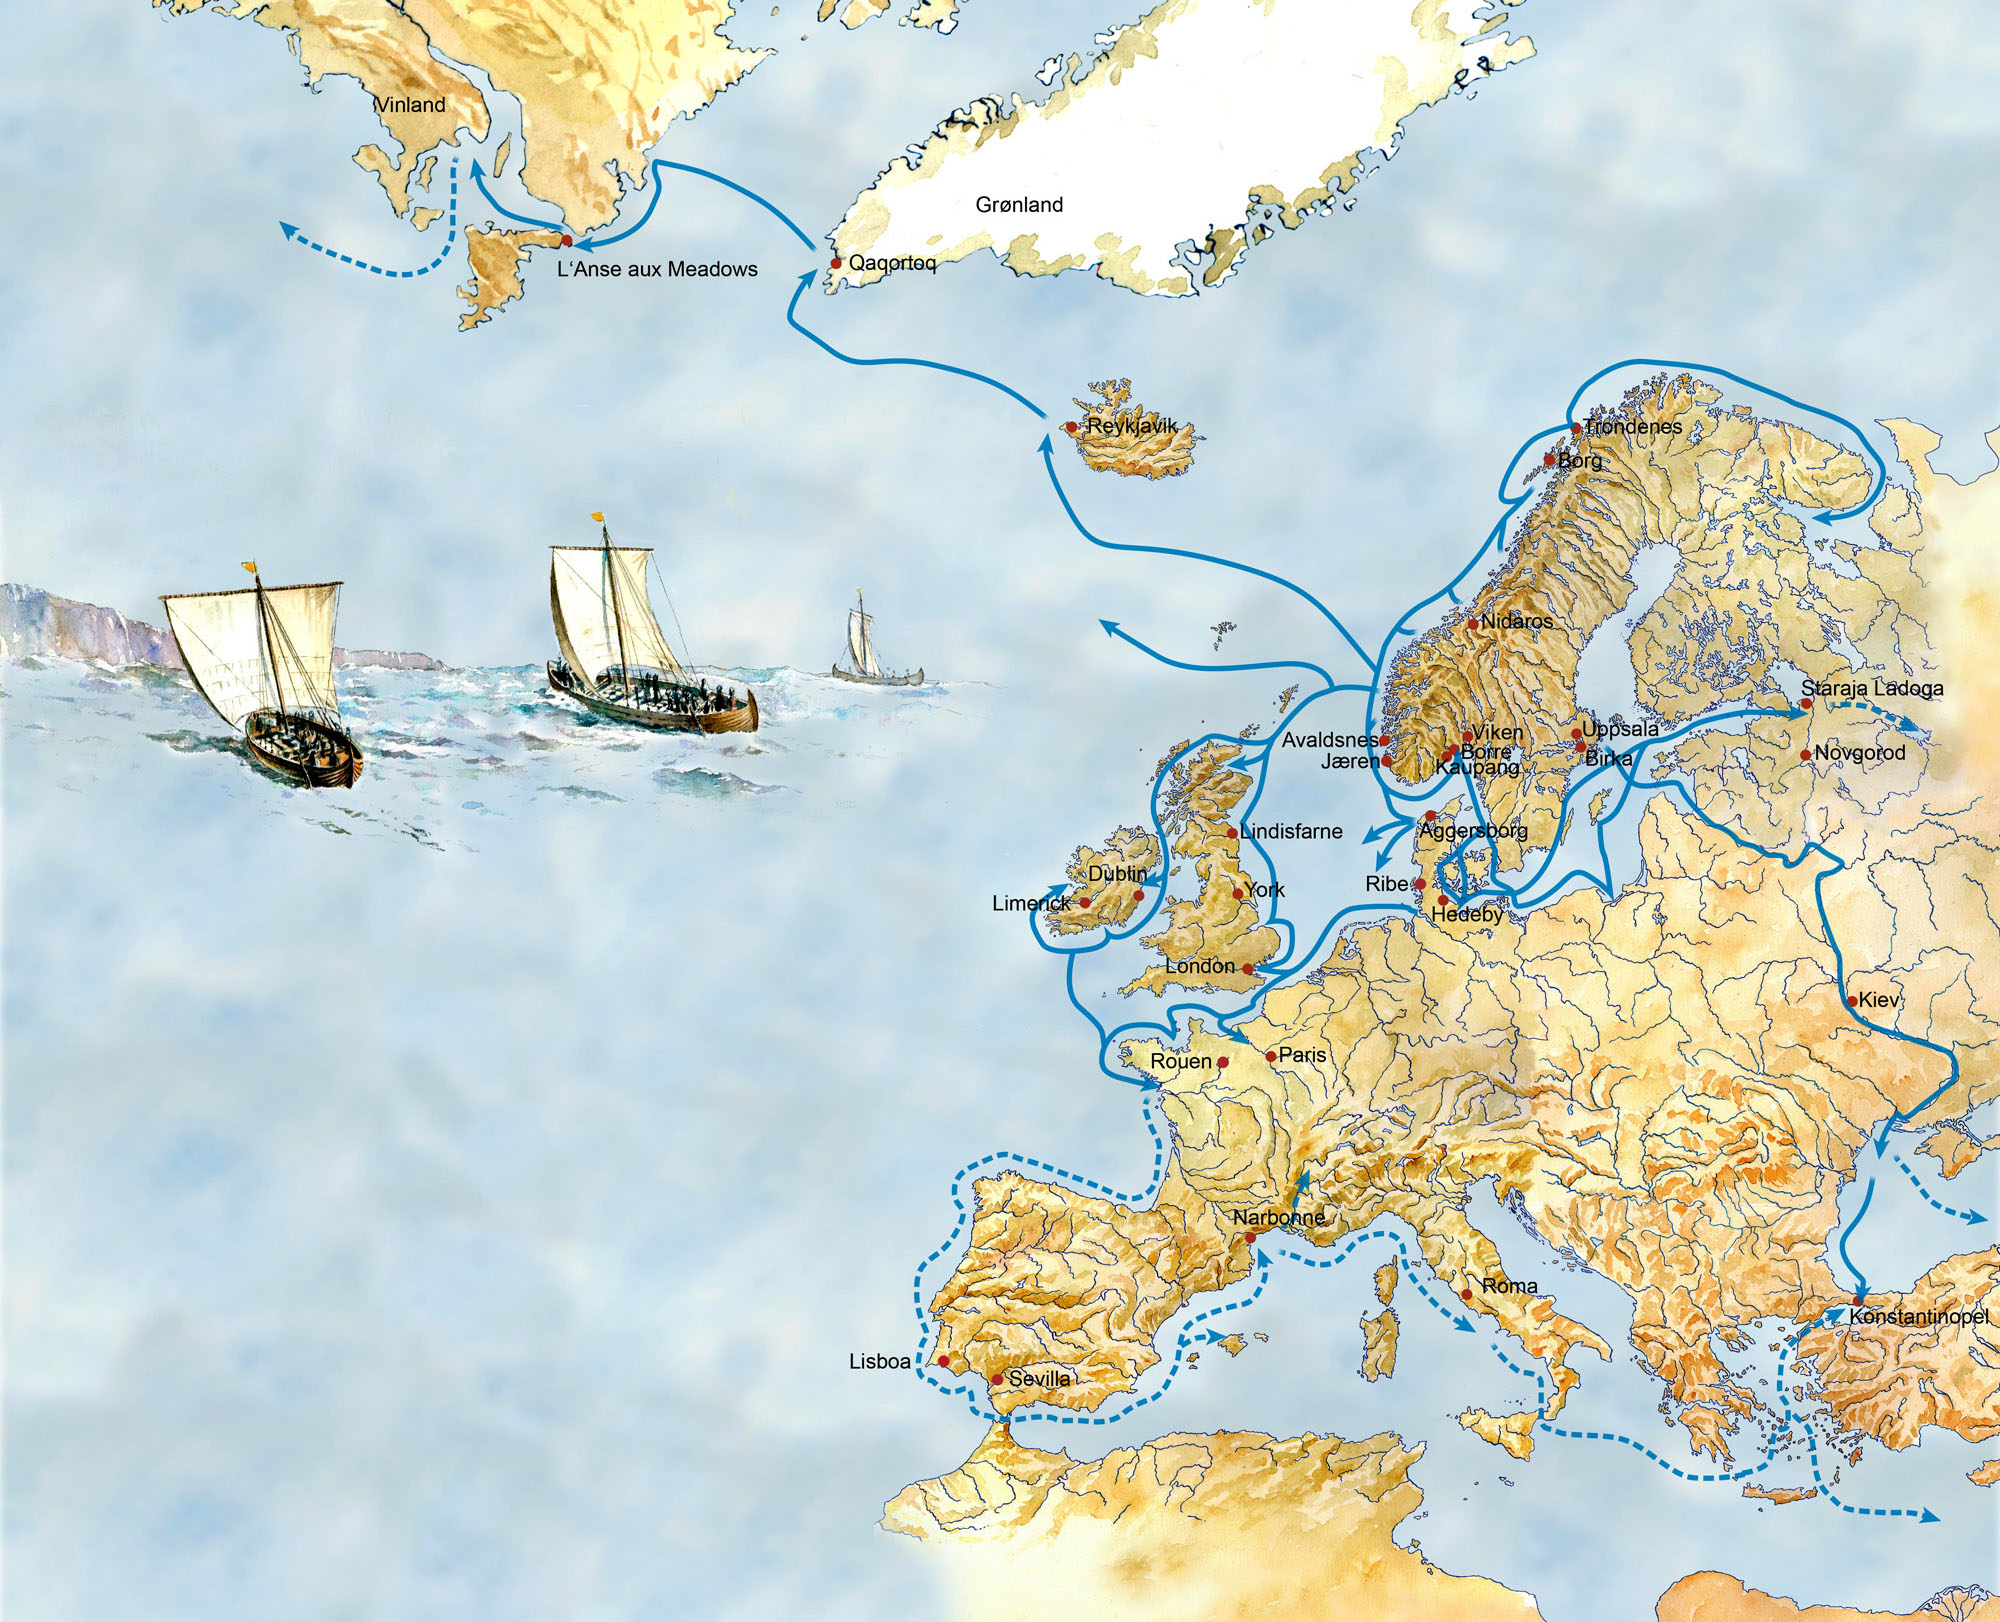 The Vikings sailed over vast distances, from America in the west to Asia Minor in the east, and perhaps even farther. This suggests that the written sources are right: Viking ships were unique for their time.